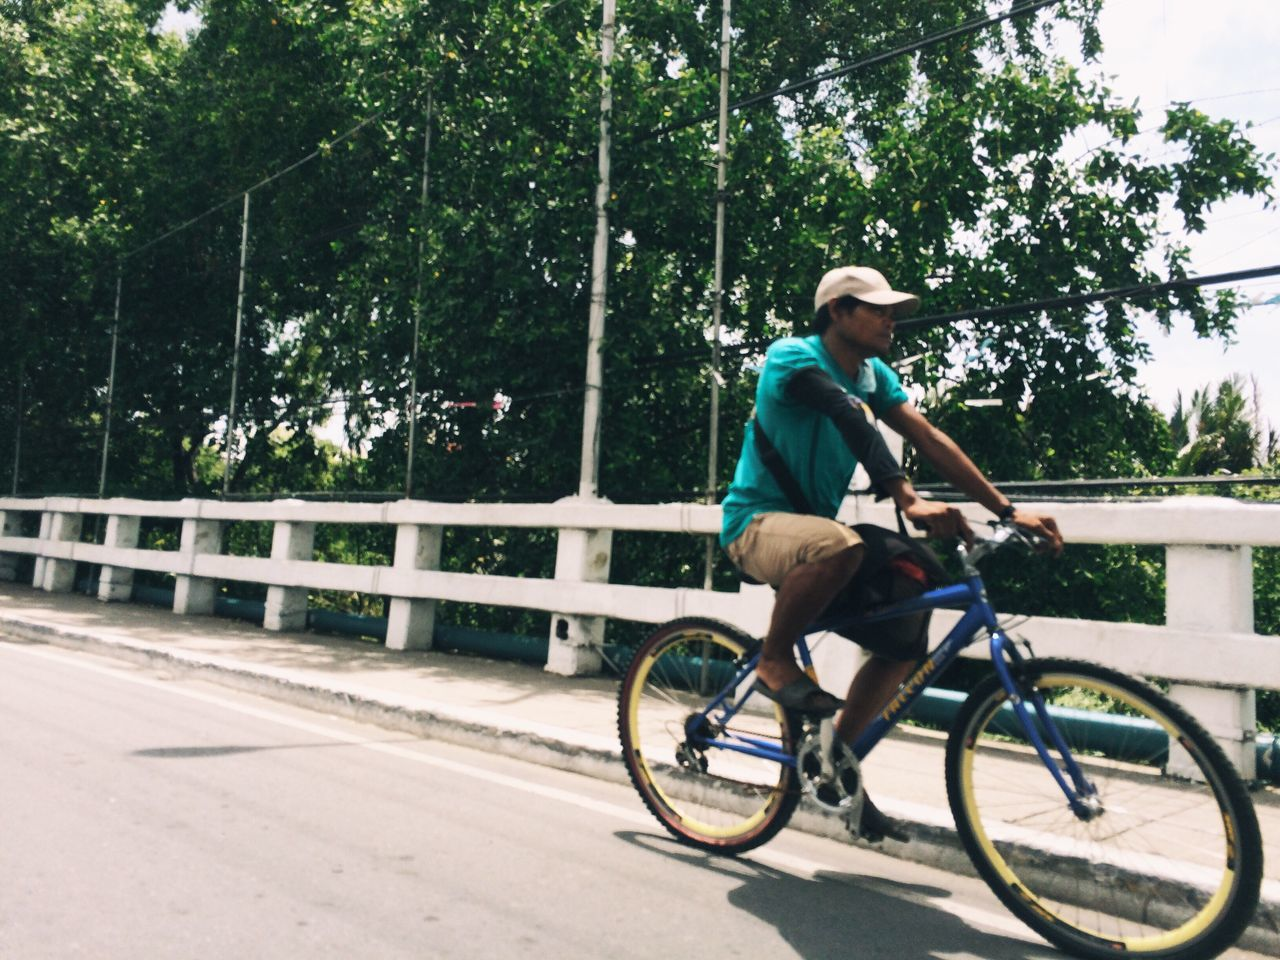 bicycle, full length, cycling, tree, one person, transportation, riding, day, young adult, outdoors, leisure activity, side view, motion, nature, one young man only, people, one man only, cycling helmet, adults only, adult, only men